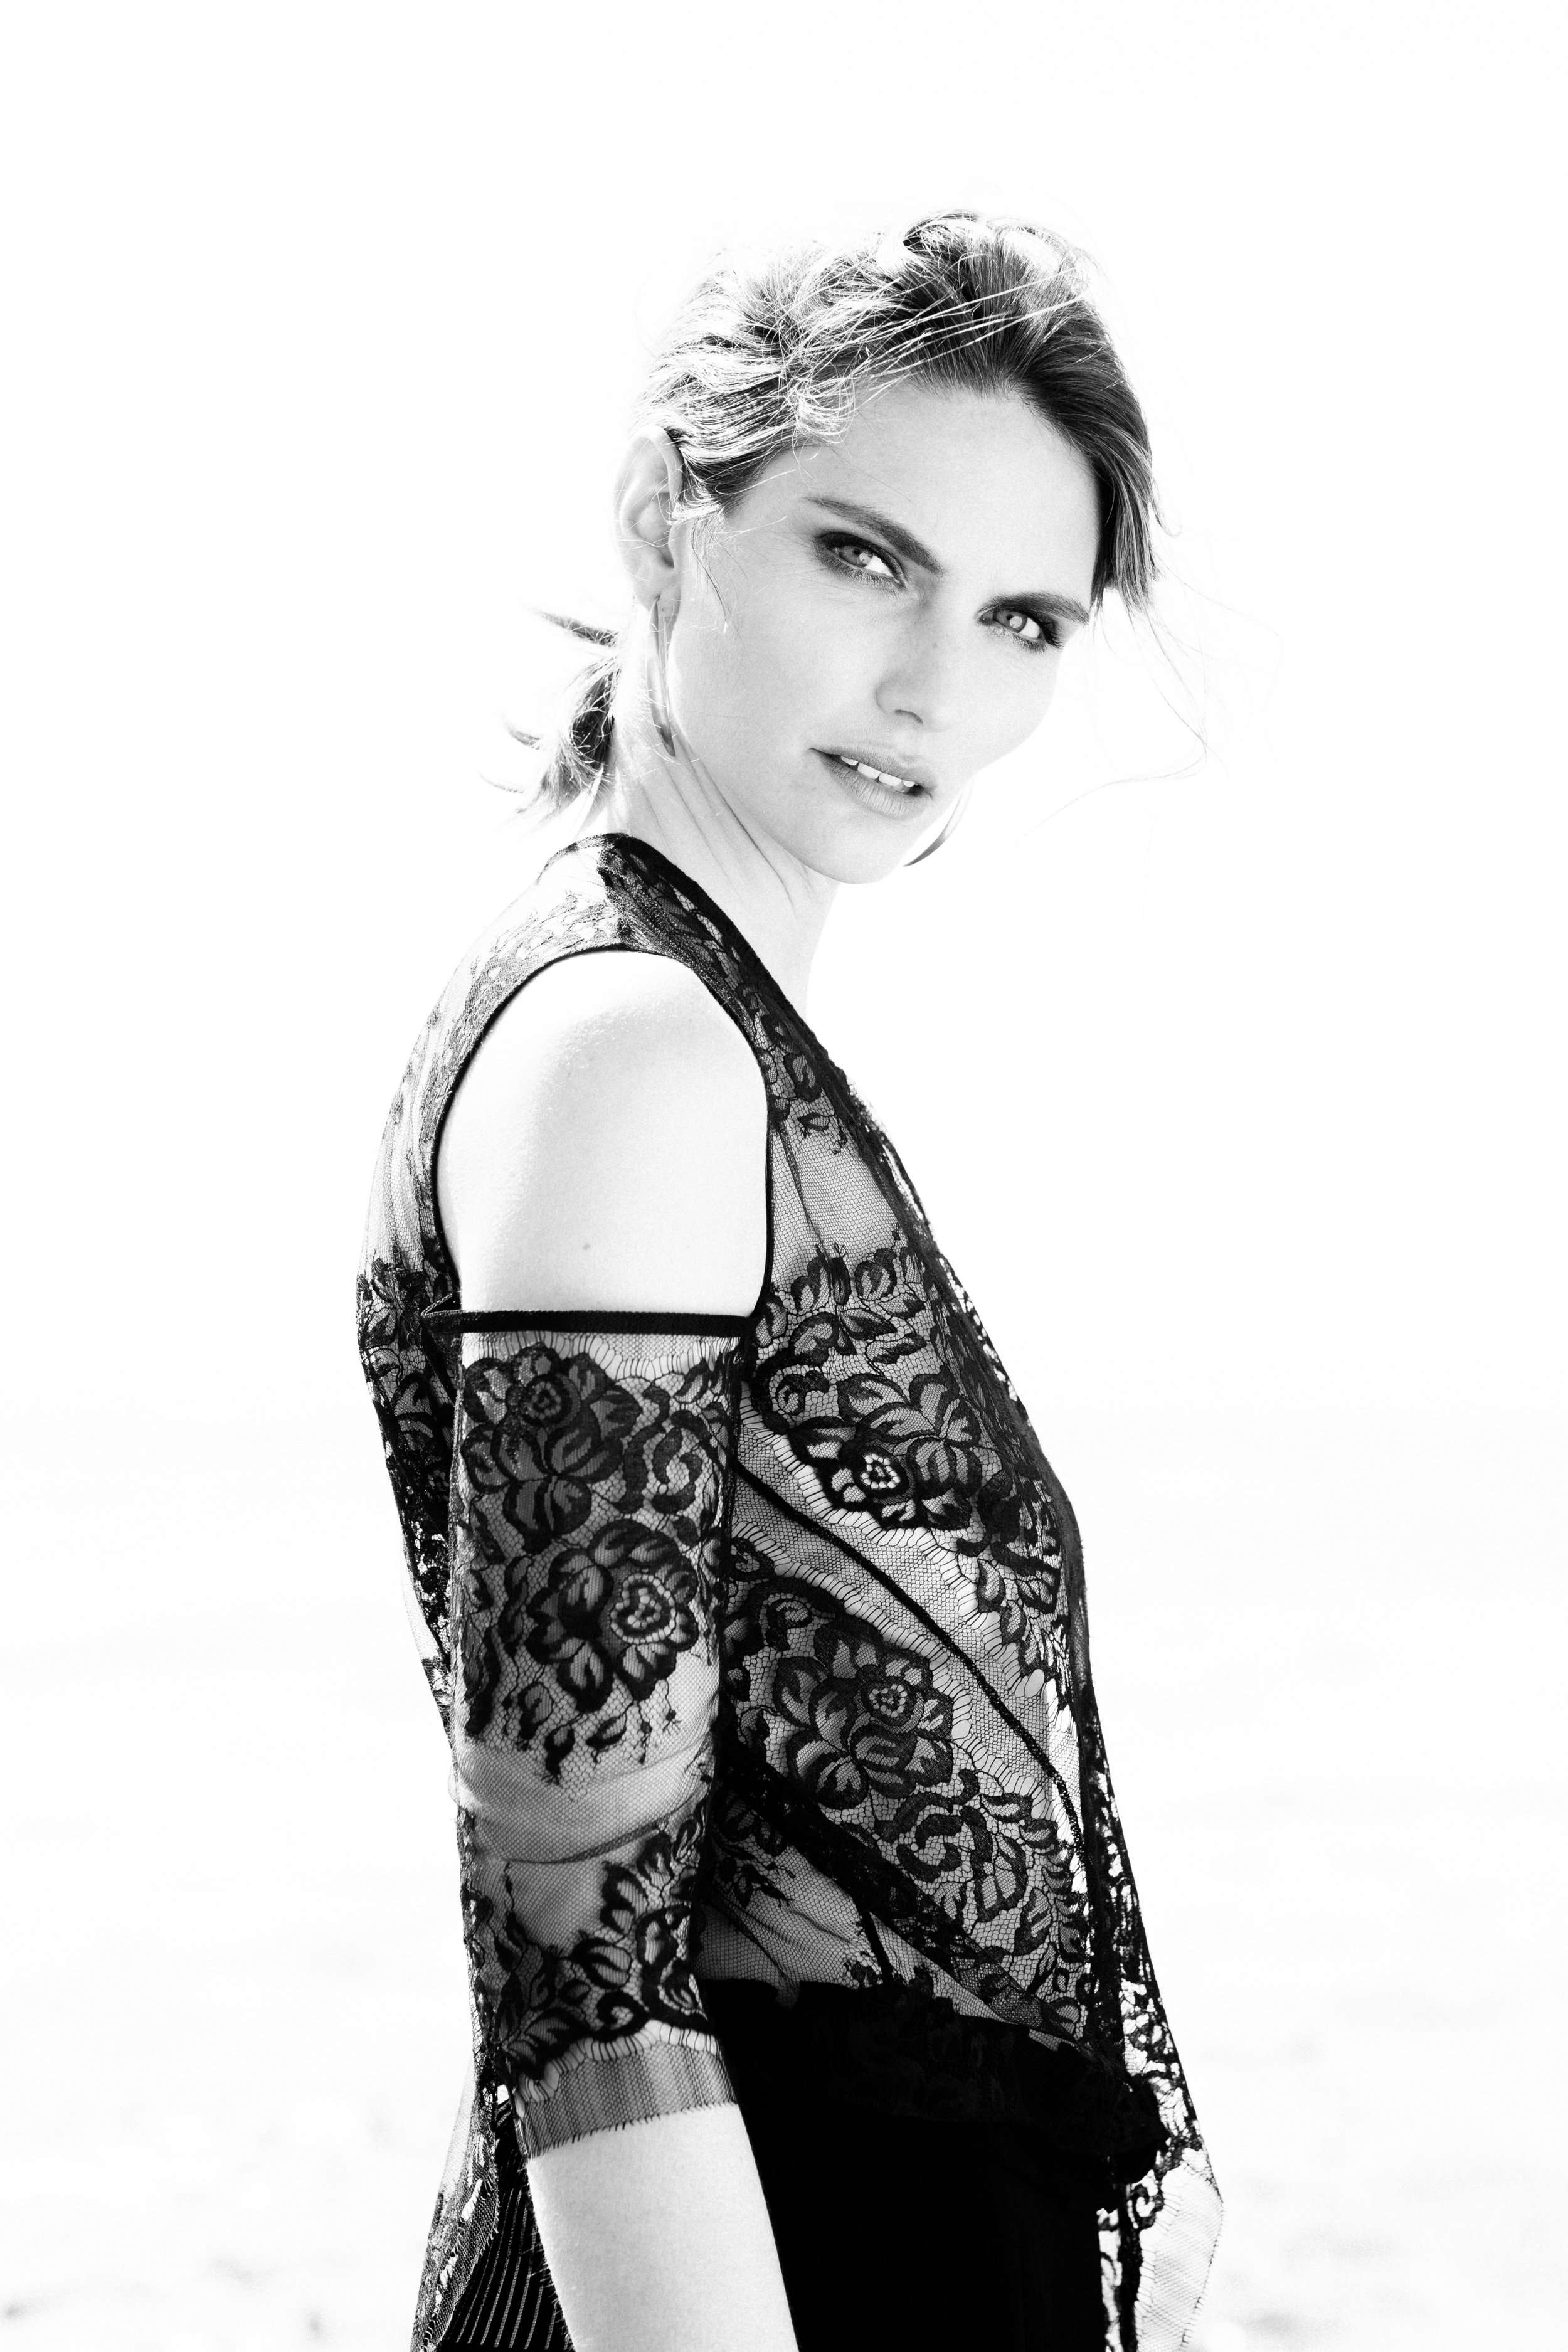 Black and white editorial fashion photo of model wearing black lace dress.